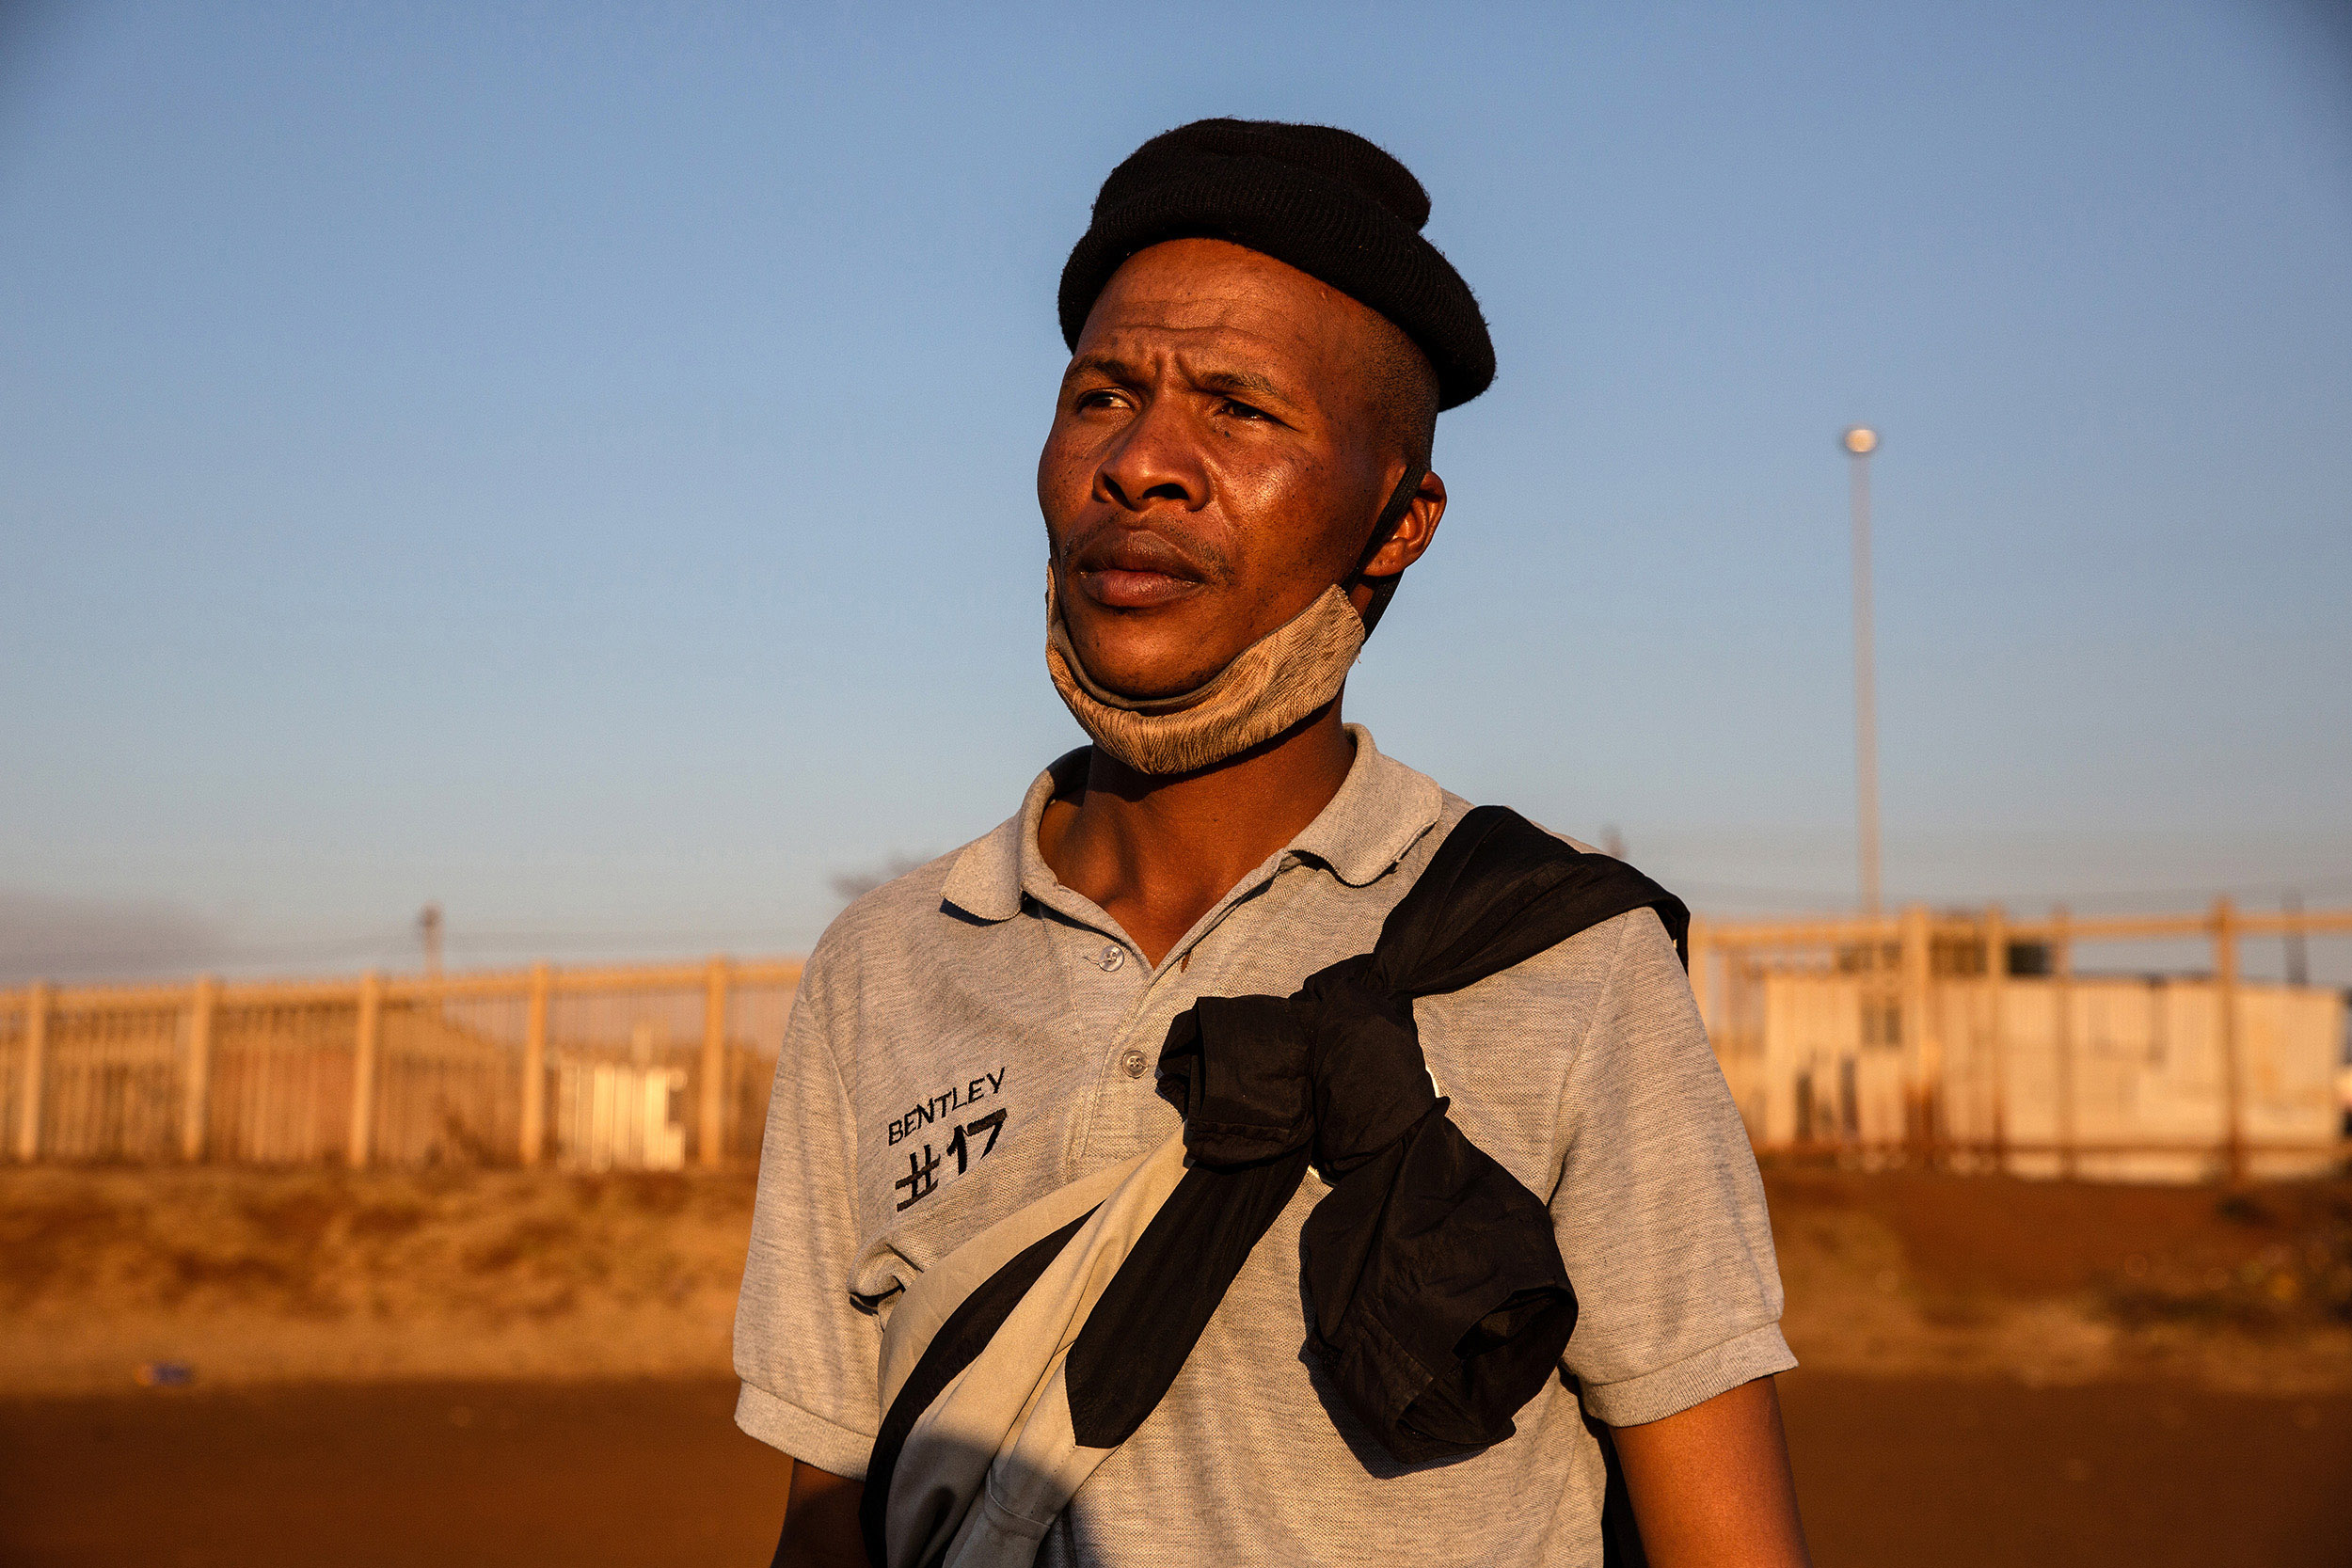 7 July 2020: Self-described community activist Luan Bentley participated in the march. He said everyone at the meeting was frustrated with the government allowing migrants to work and own property in South Africa.